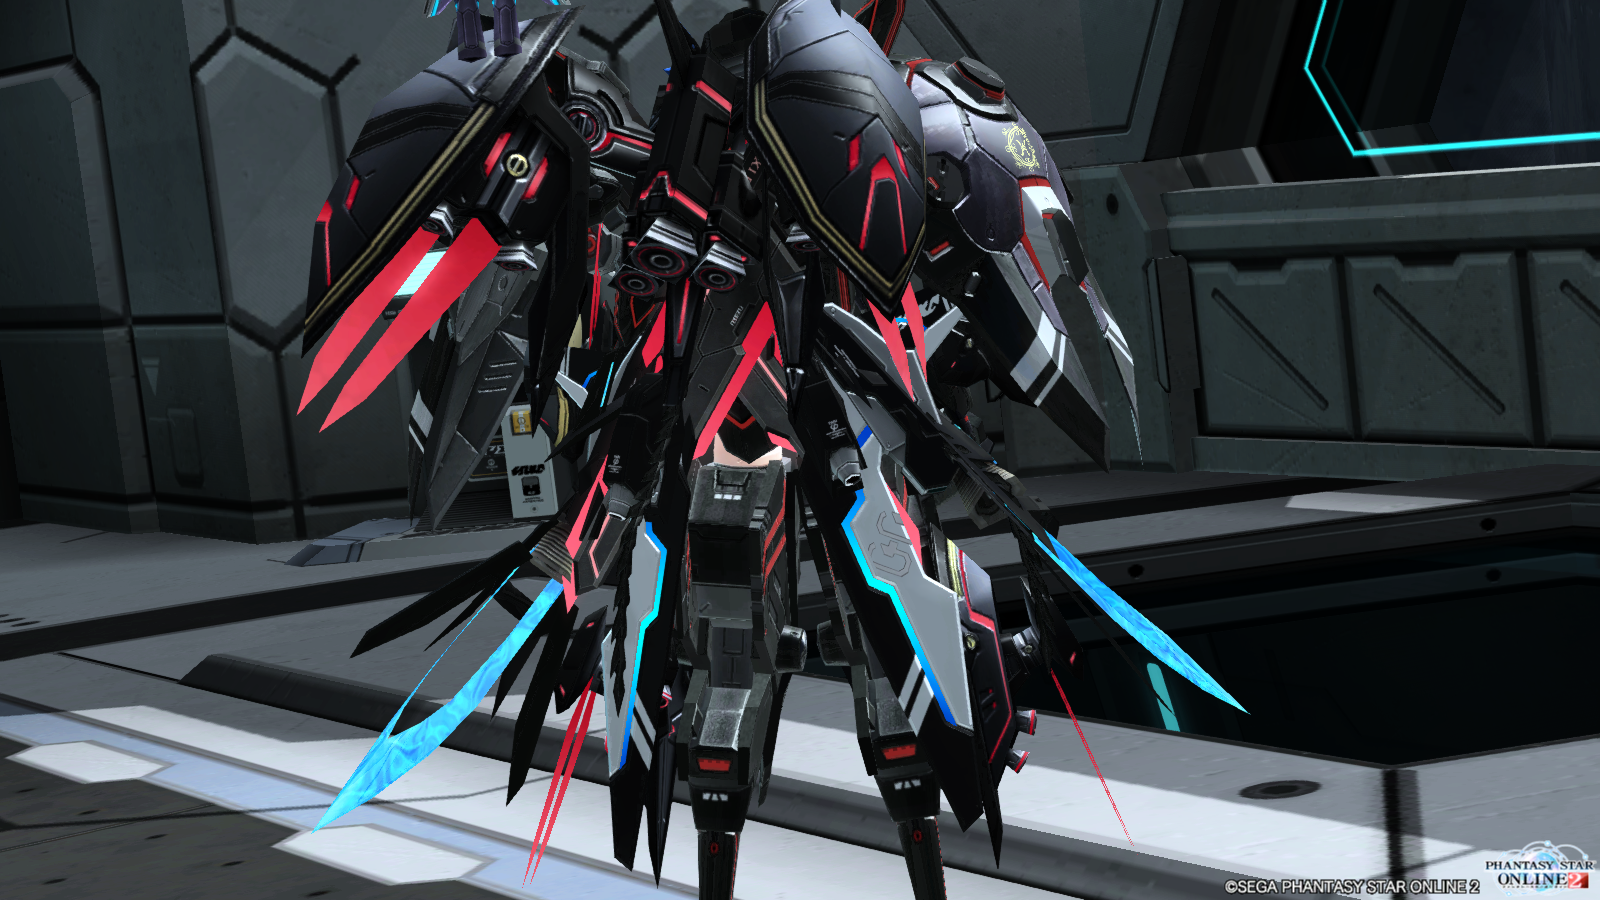 pso20140523_040005_010.png